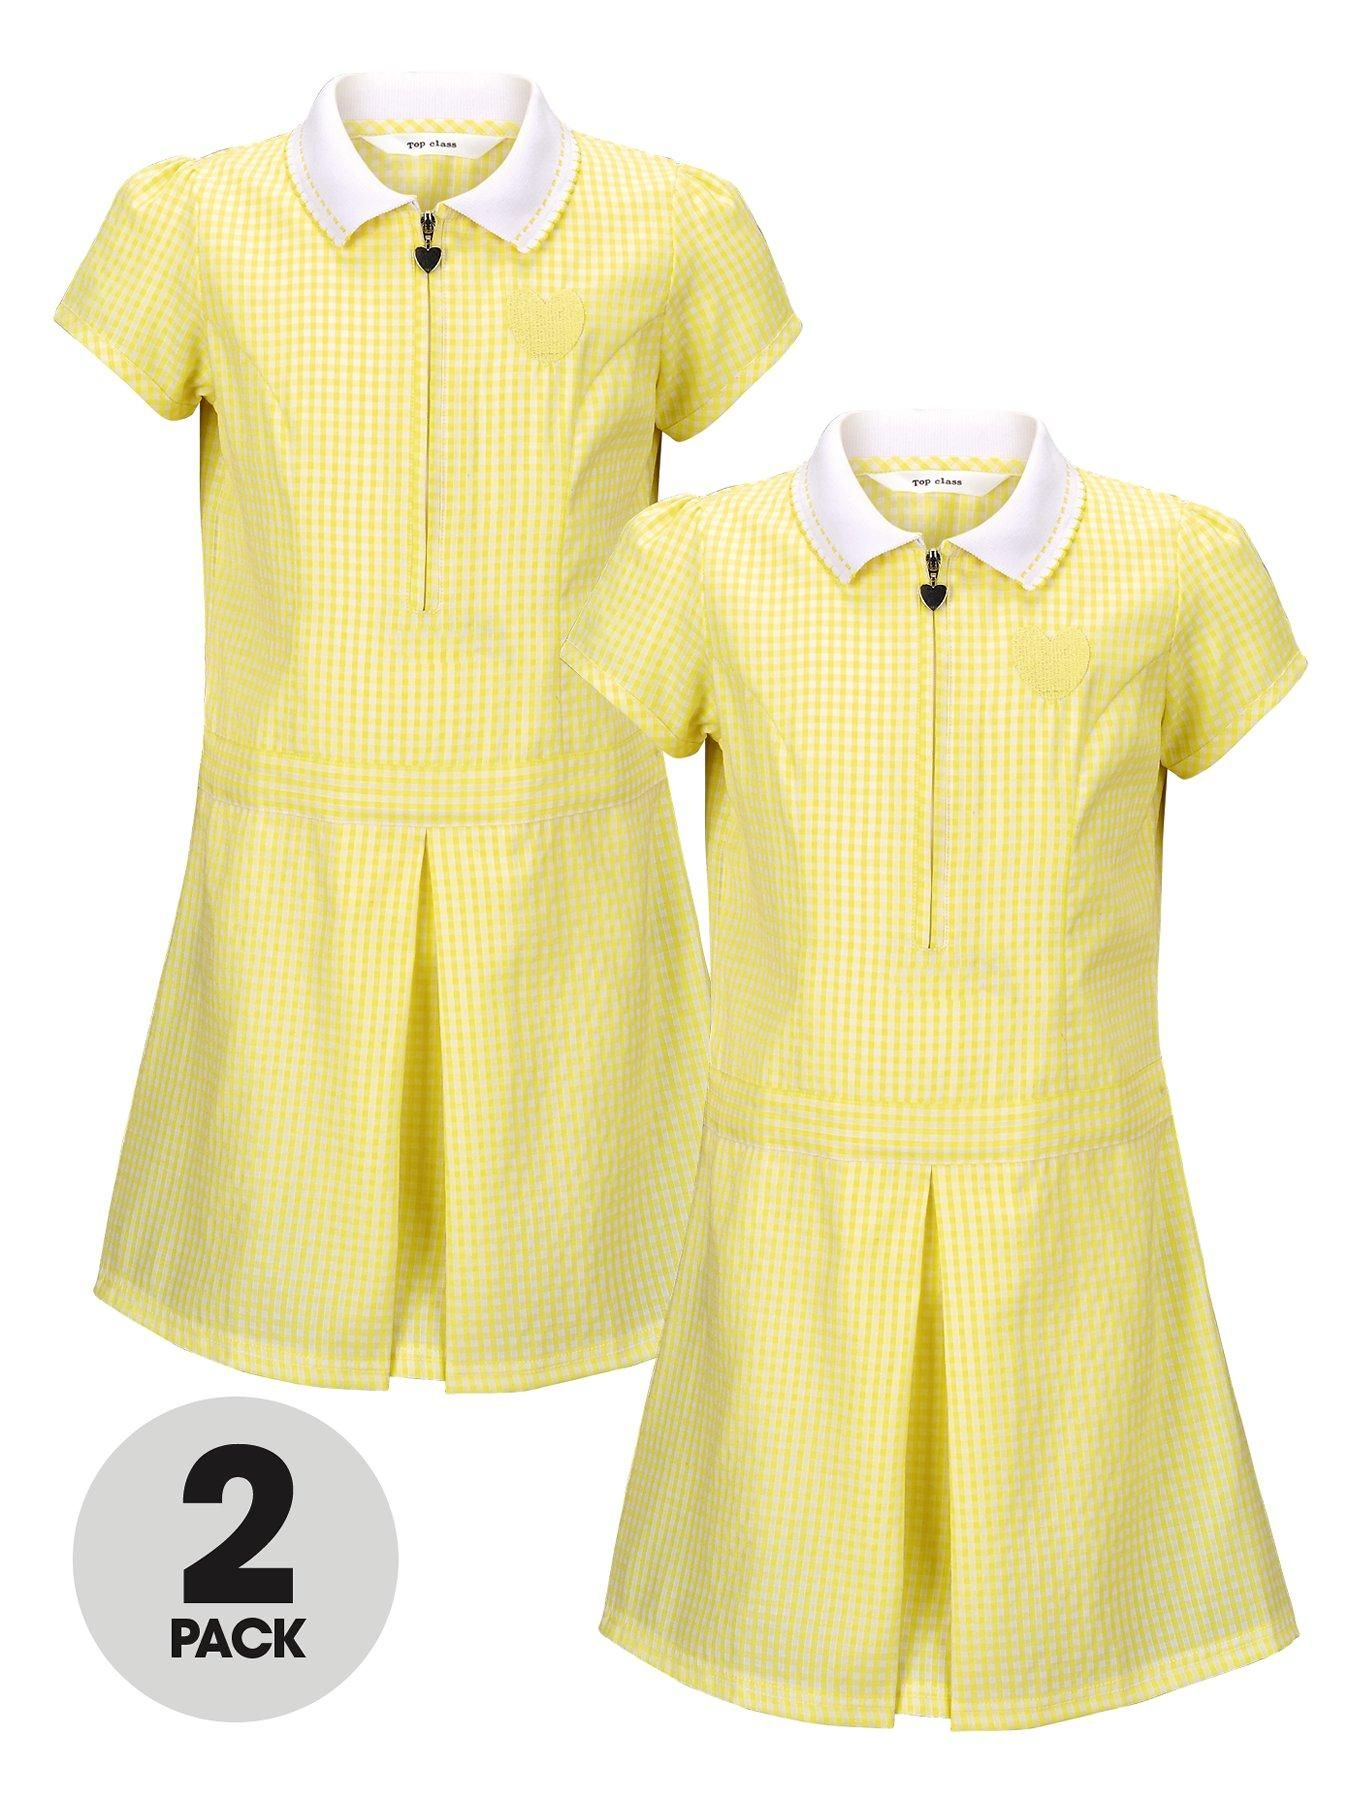 Yellow and white school summer dress